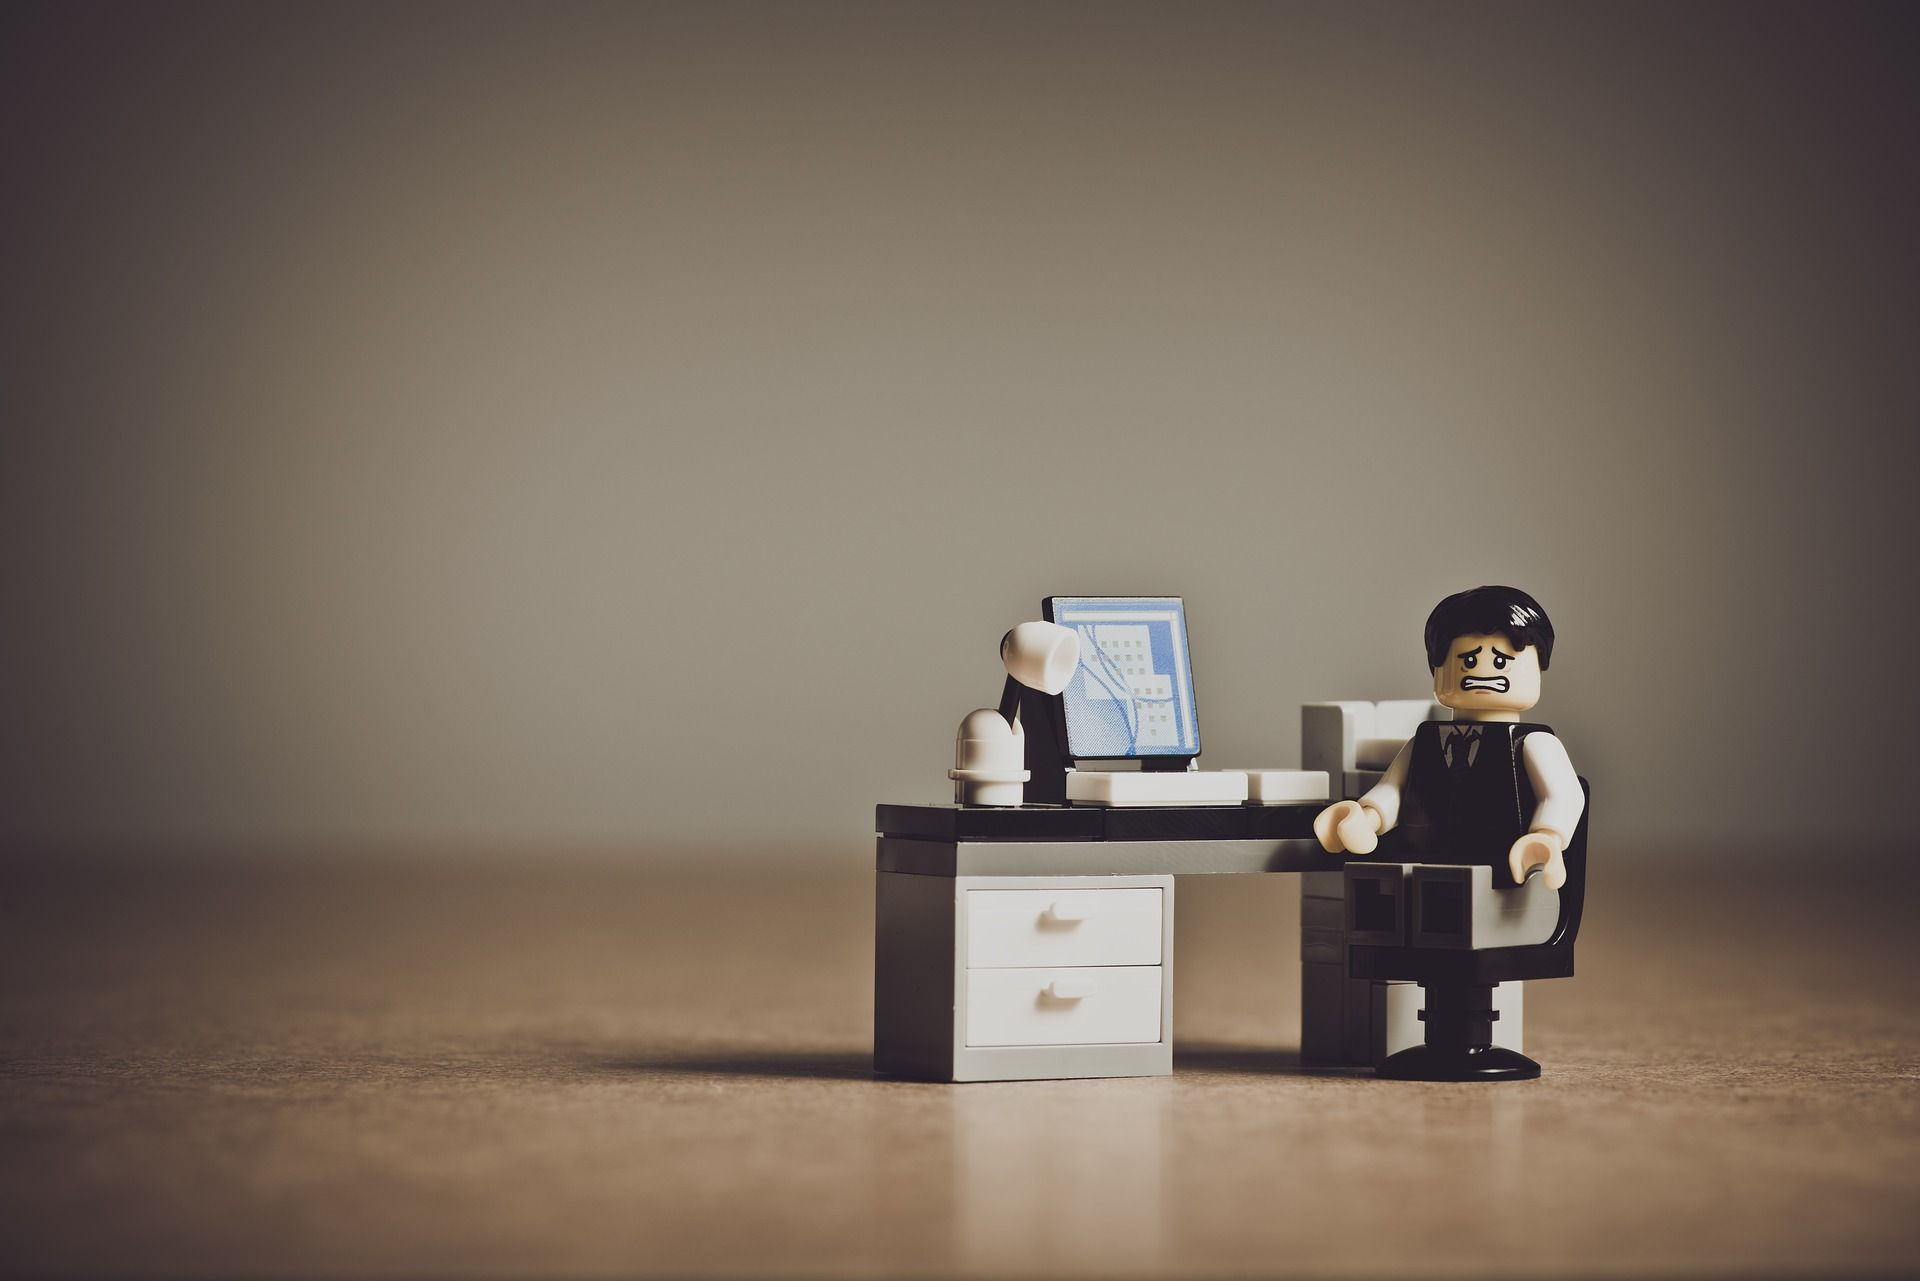 A Lego™ piece man with a stressed expression sitting at a desk.